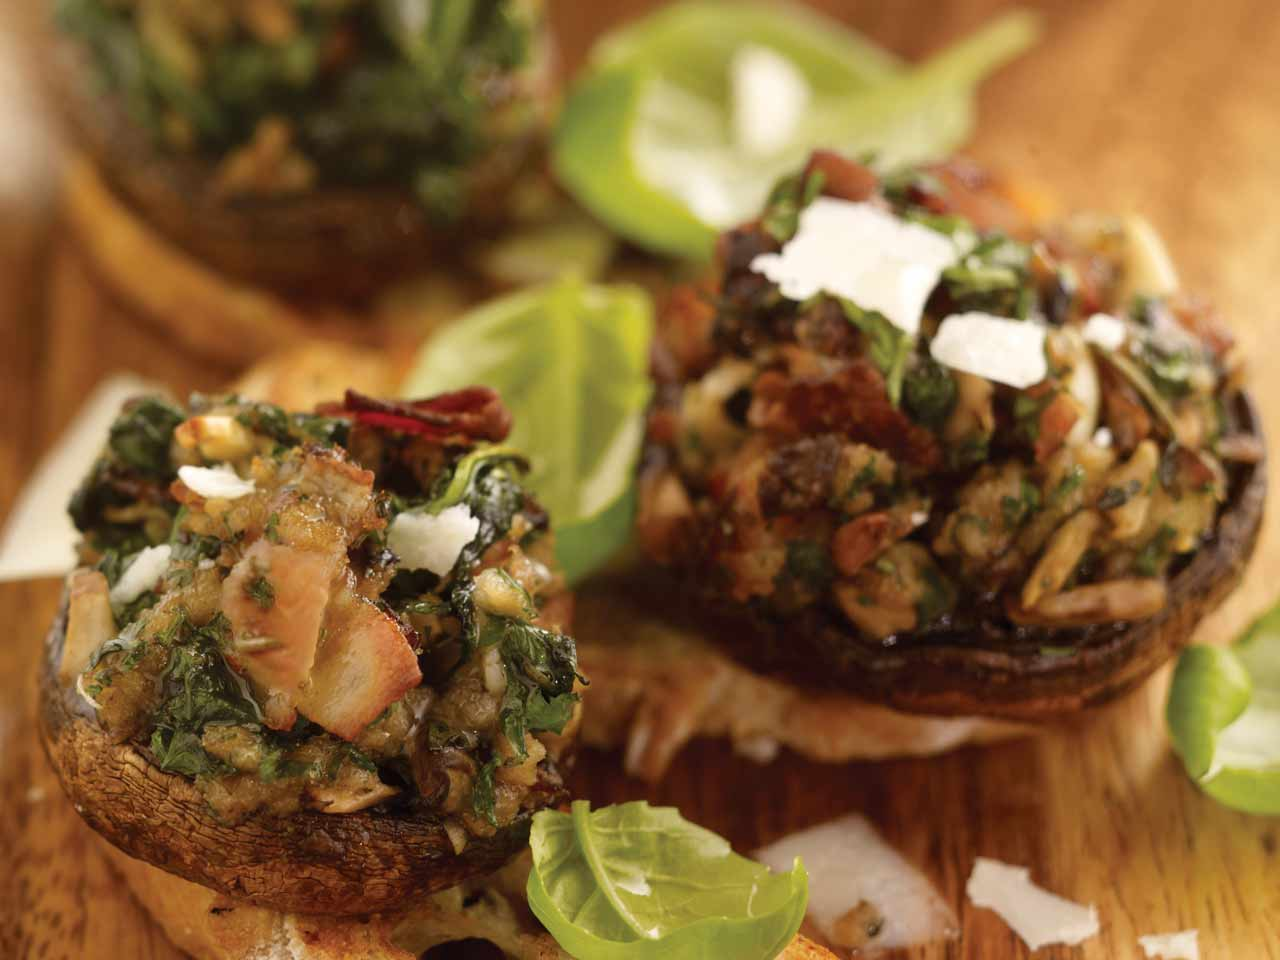 Field mushrooms stuffed with bacon and spinach - Saga